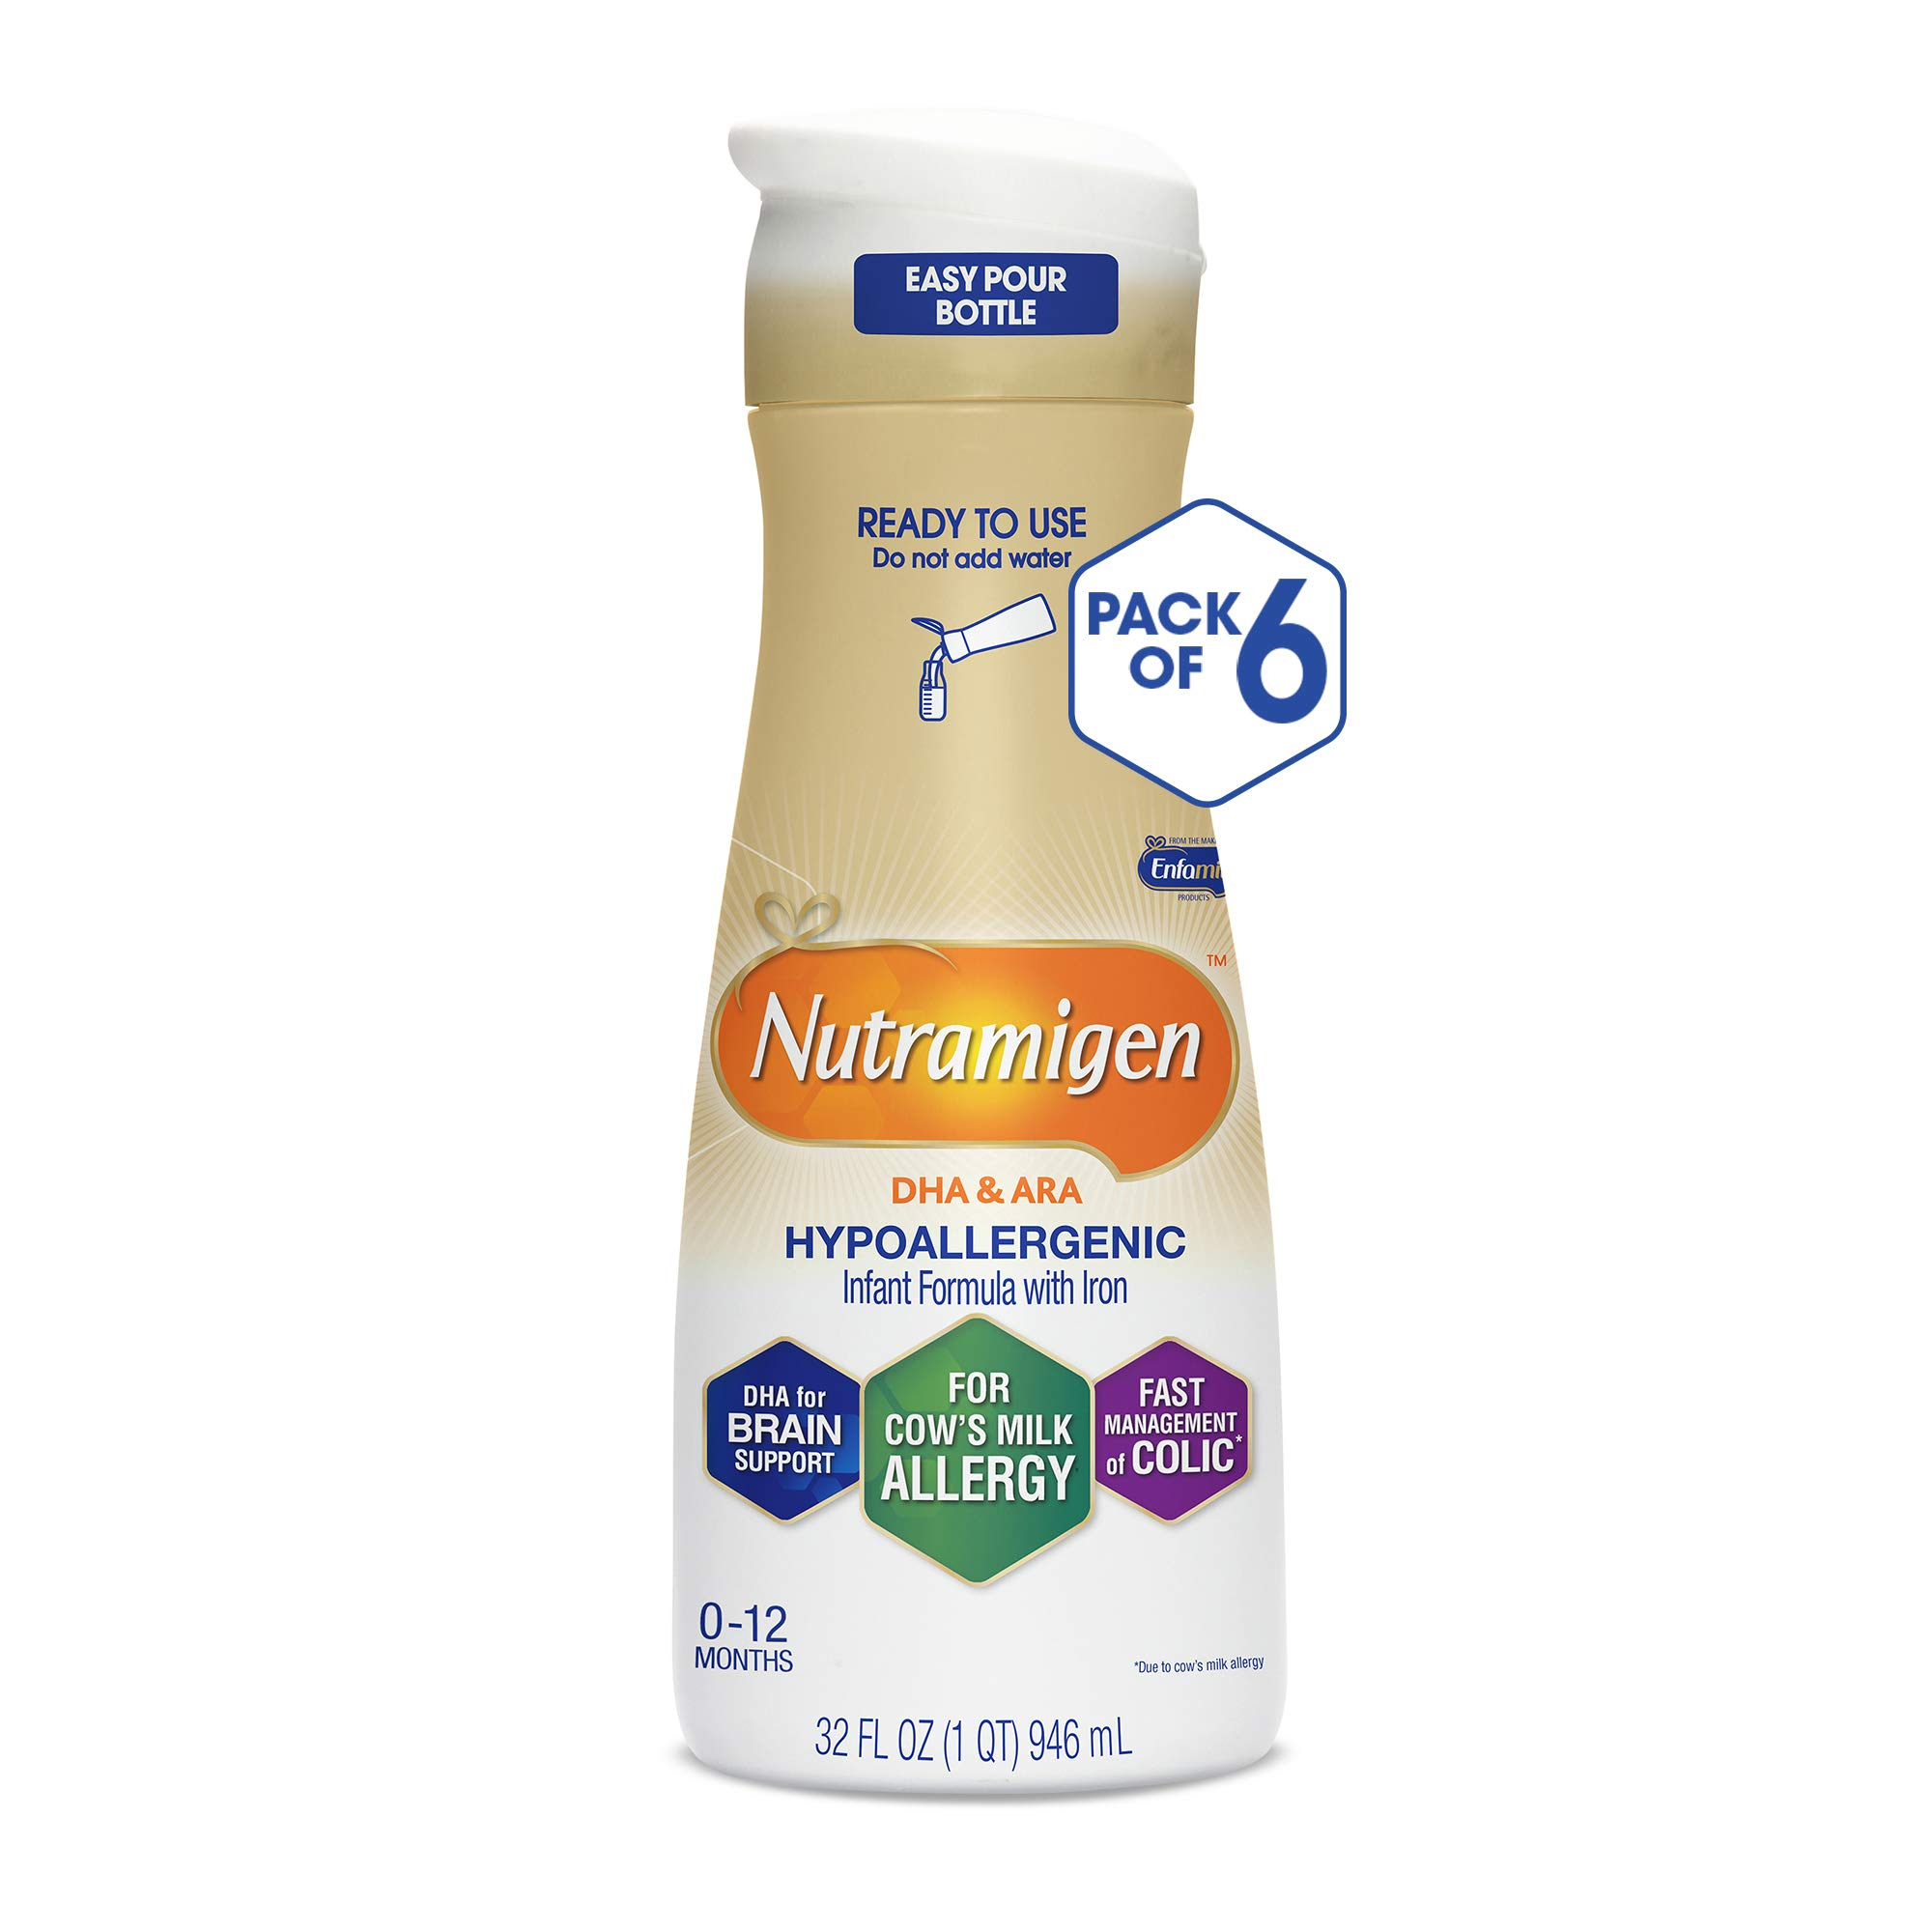 Enfamil Nutramigen Hypoallergenic Ready to Feed Colic Baby Formula Lactose Free Milk, 32 fluid ounce (6 count) - Omega 3 DHA, Probiotics, Iron, Immune Support